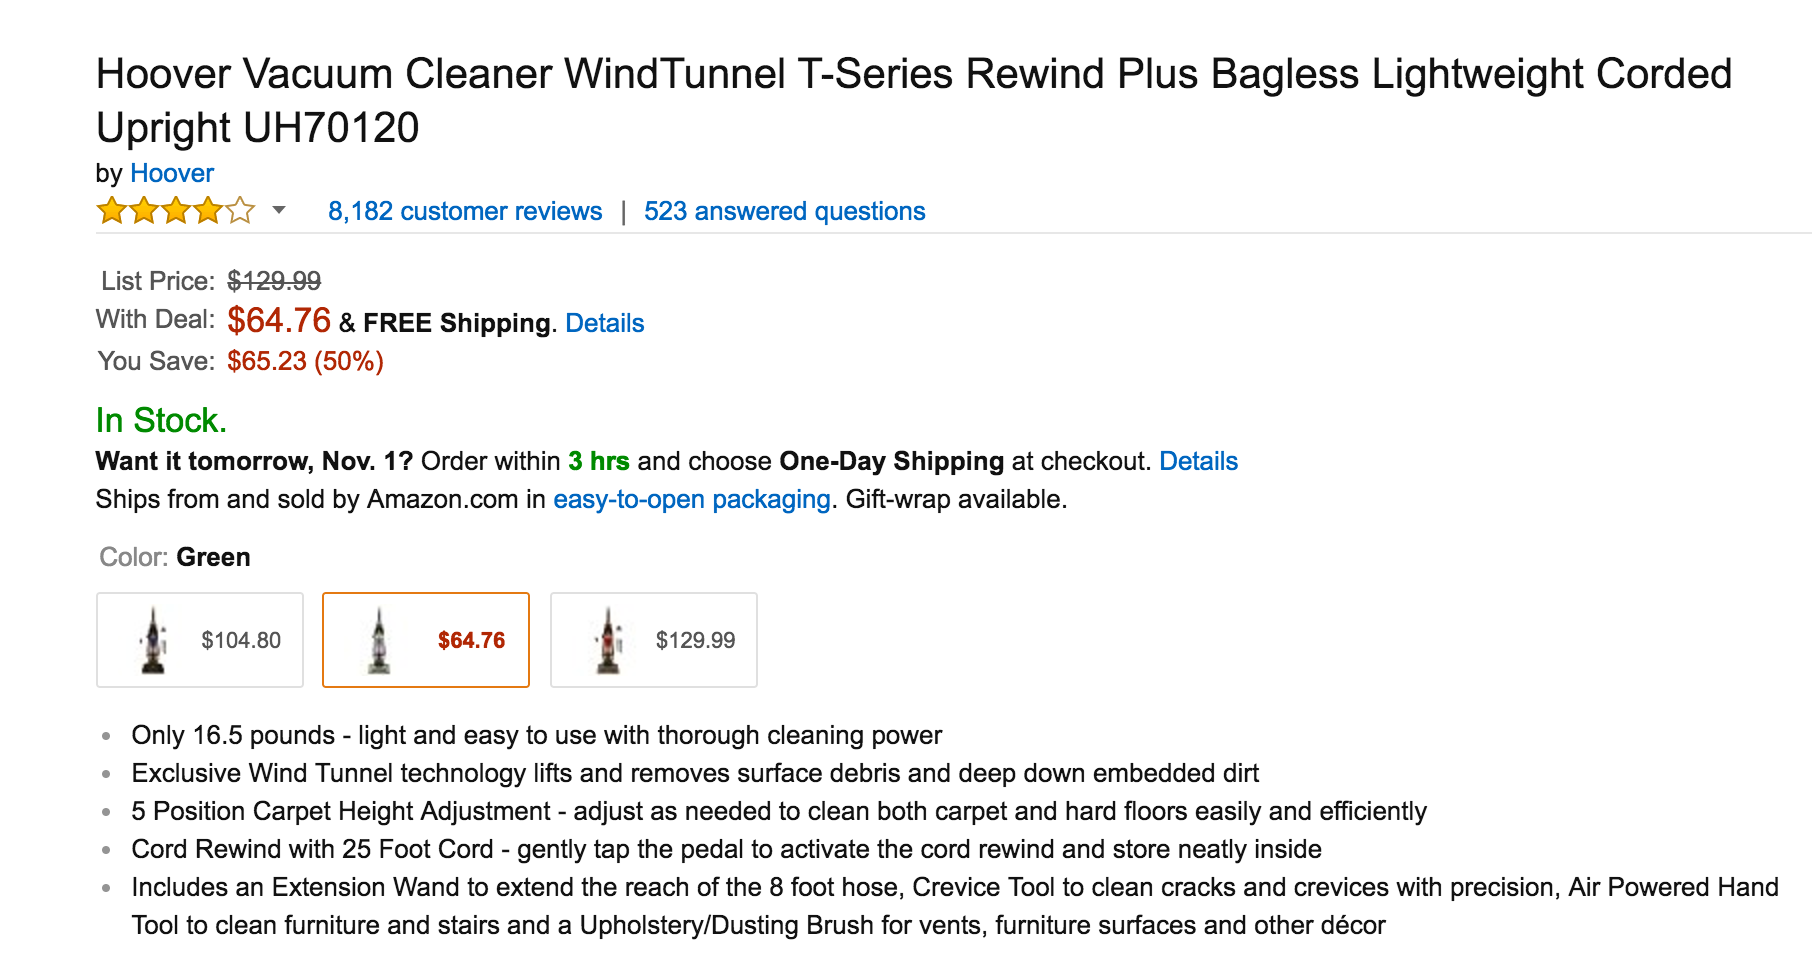 hoover-corded-upright-vacuum-cleaner-windtunnel-t-series-rewind-plus-bagless-uh70120-2